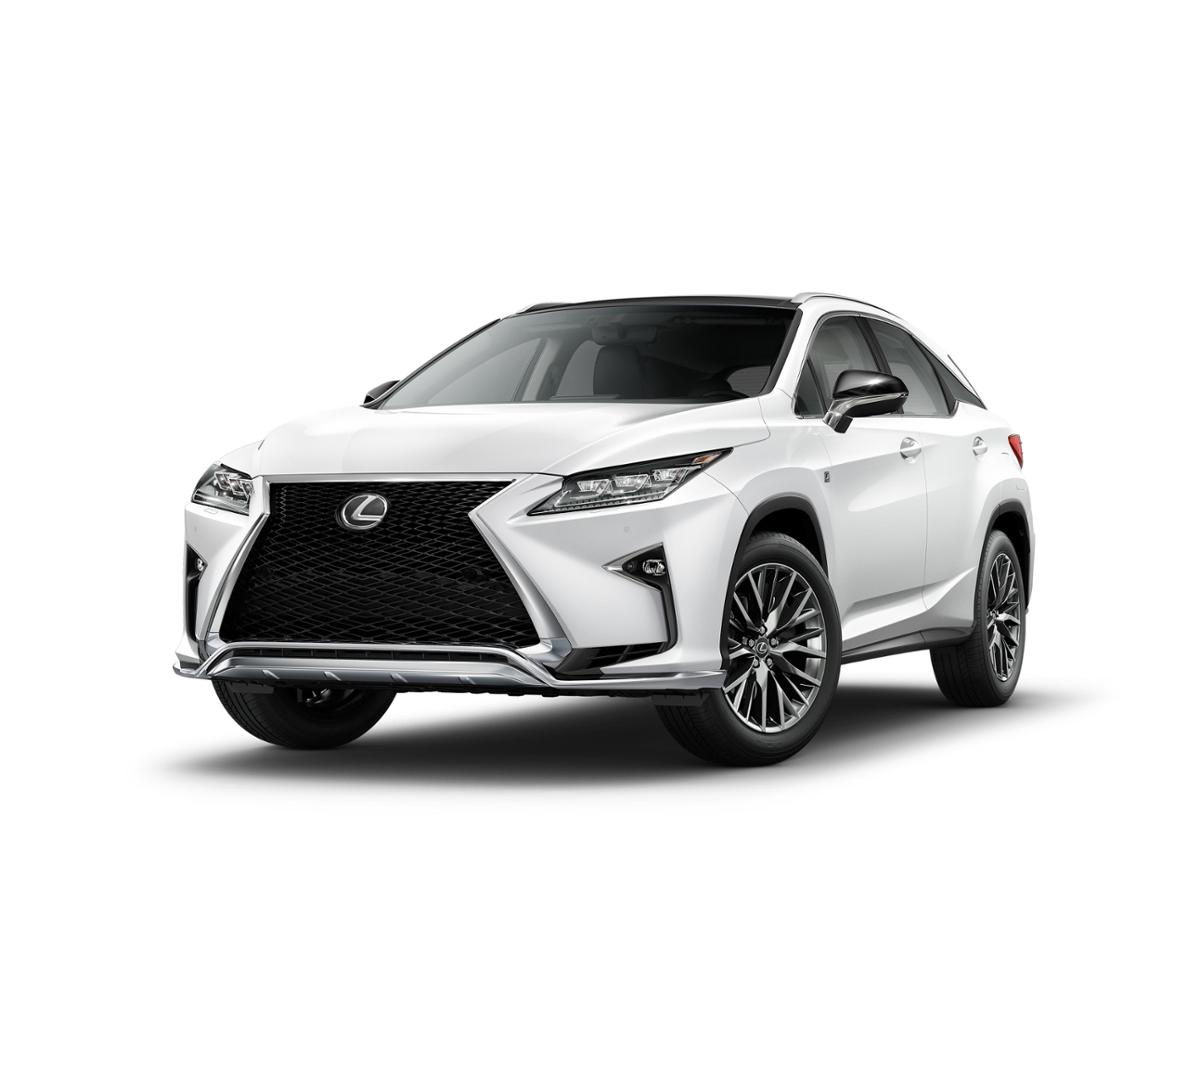 2019 Lexus RX 350 Vehicle Photo in Santa Monica, CA 90404